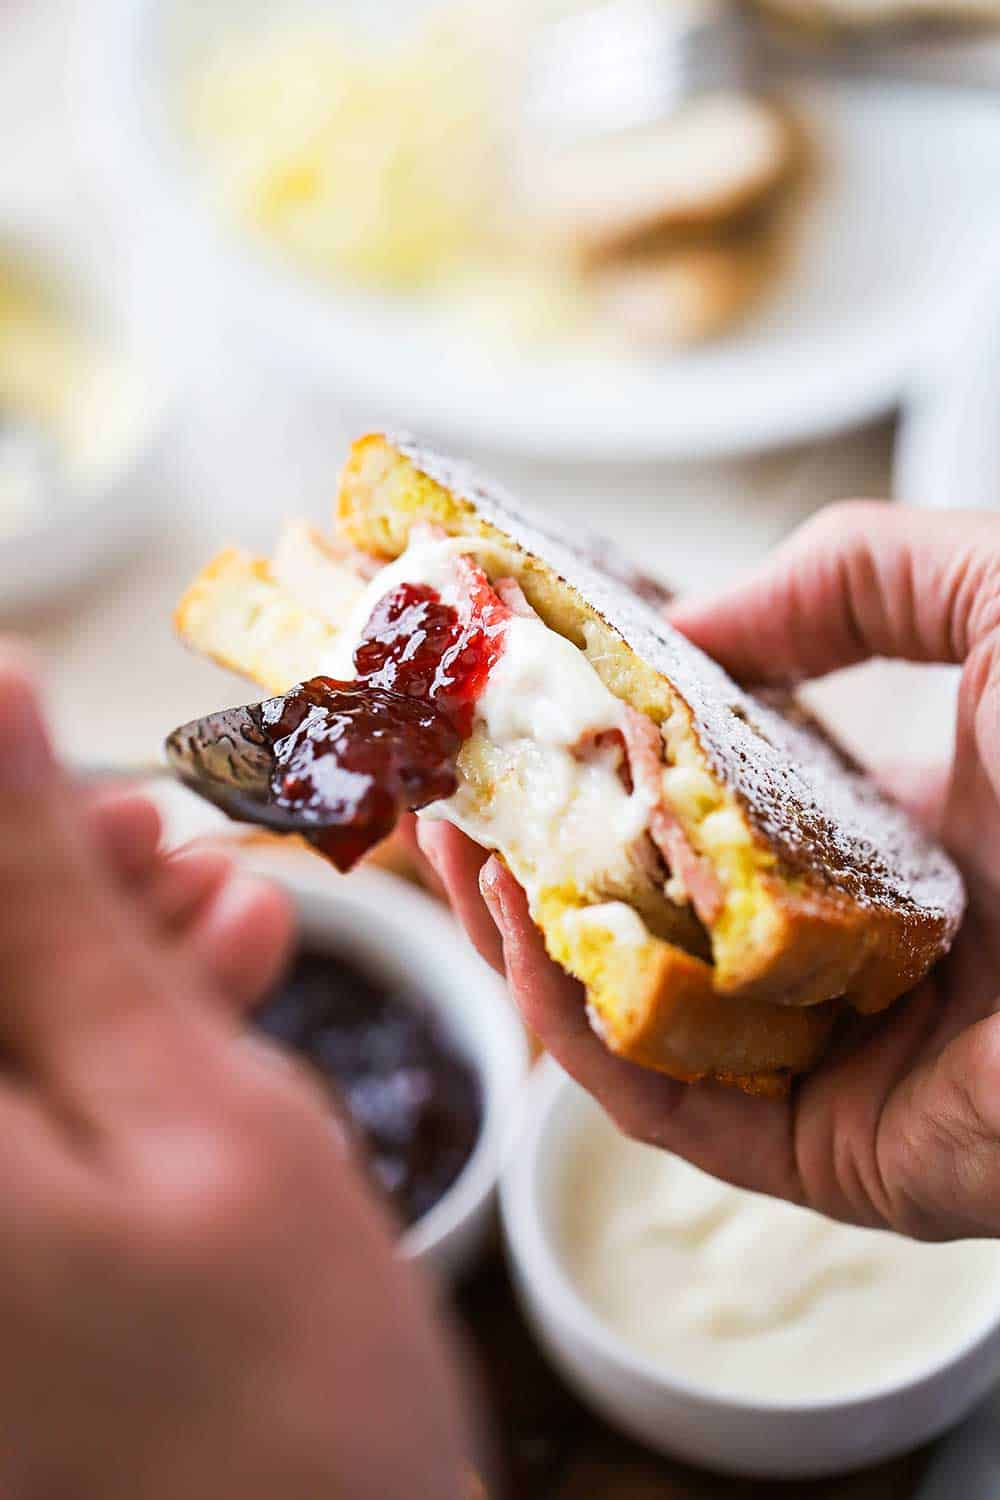 A person using a spoon to spread preserves along the cut side of a monte cristo sandwich.